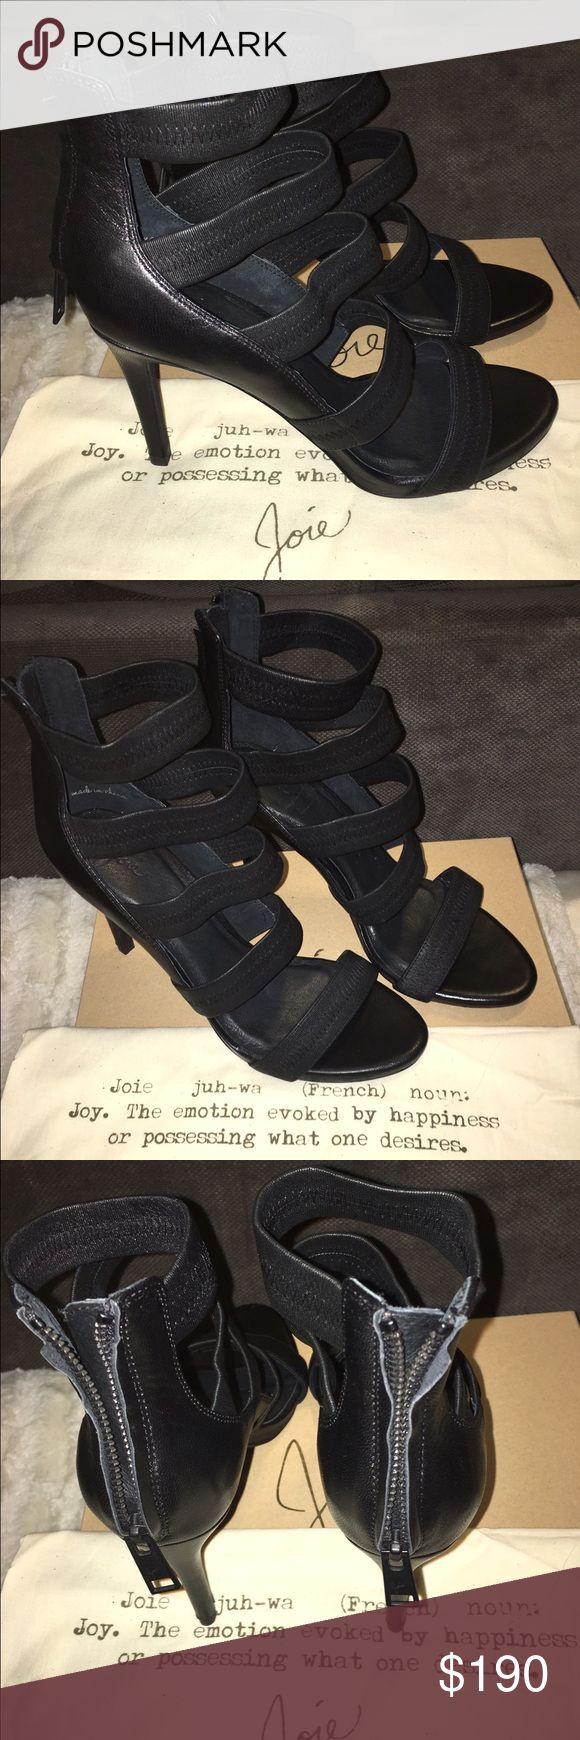 "Joie open toed platform Sandals Jenna high heels BRAND NEW in original box with shoe bag size 9.5 paid $375 4"" heel Joie Shoes Sandals"